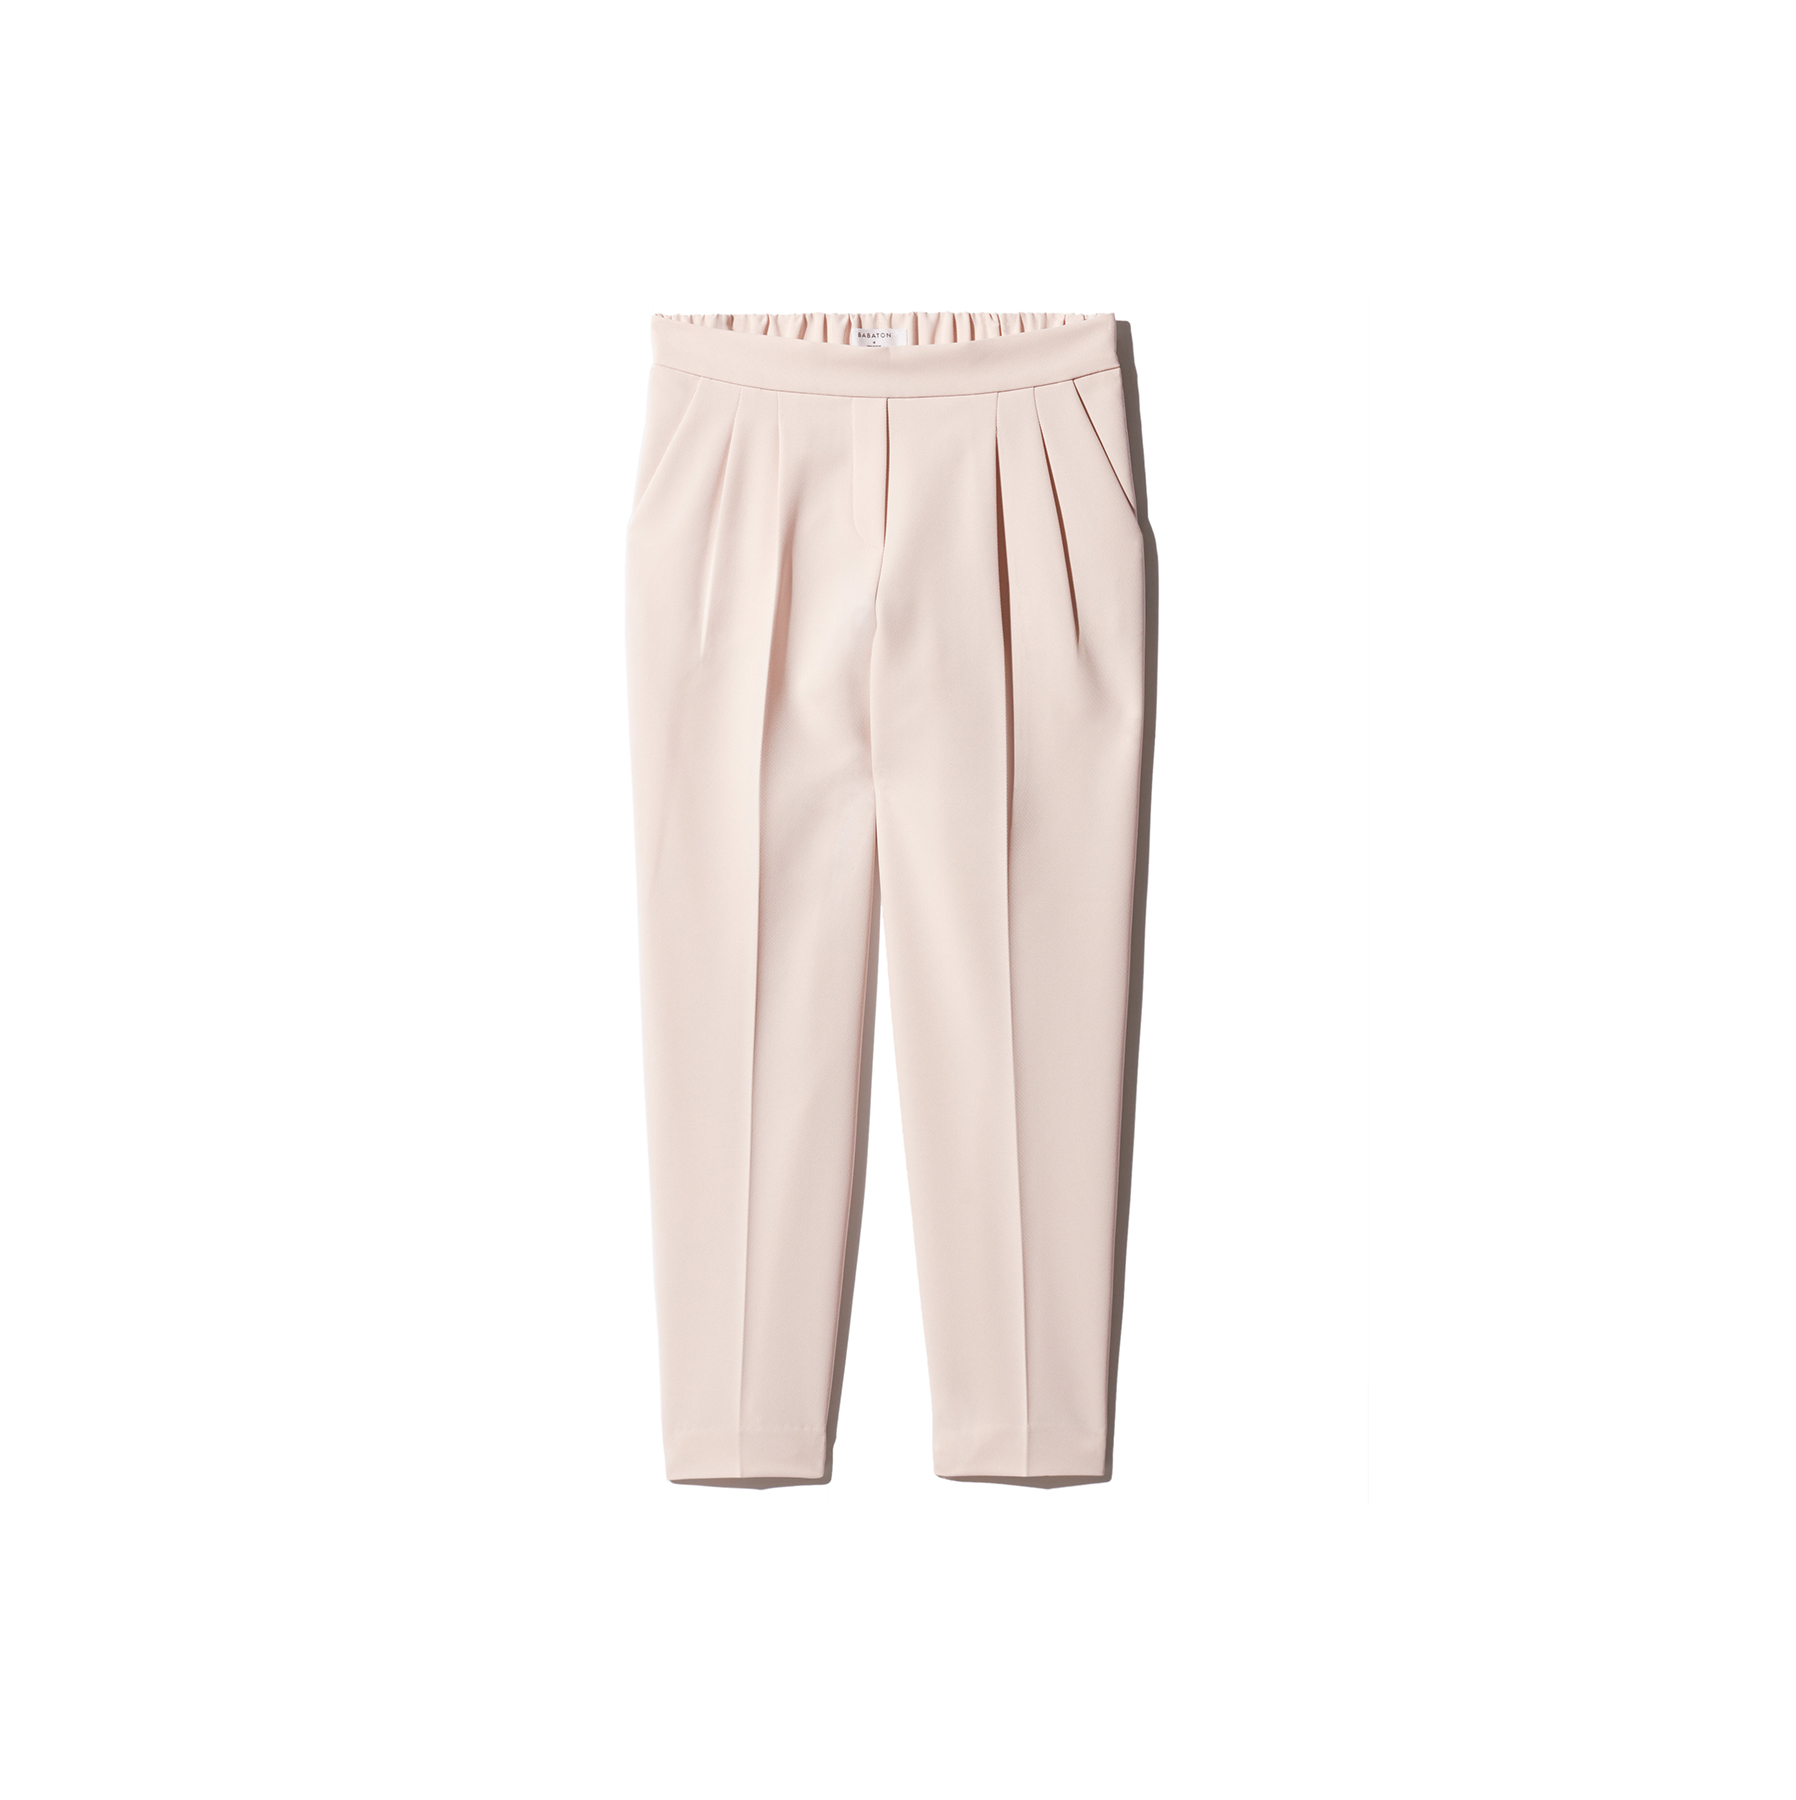 Blush-Hued Trousers